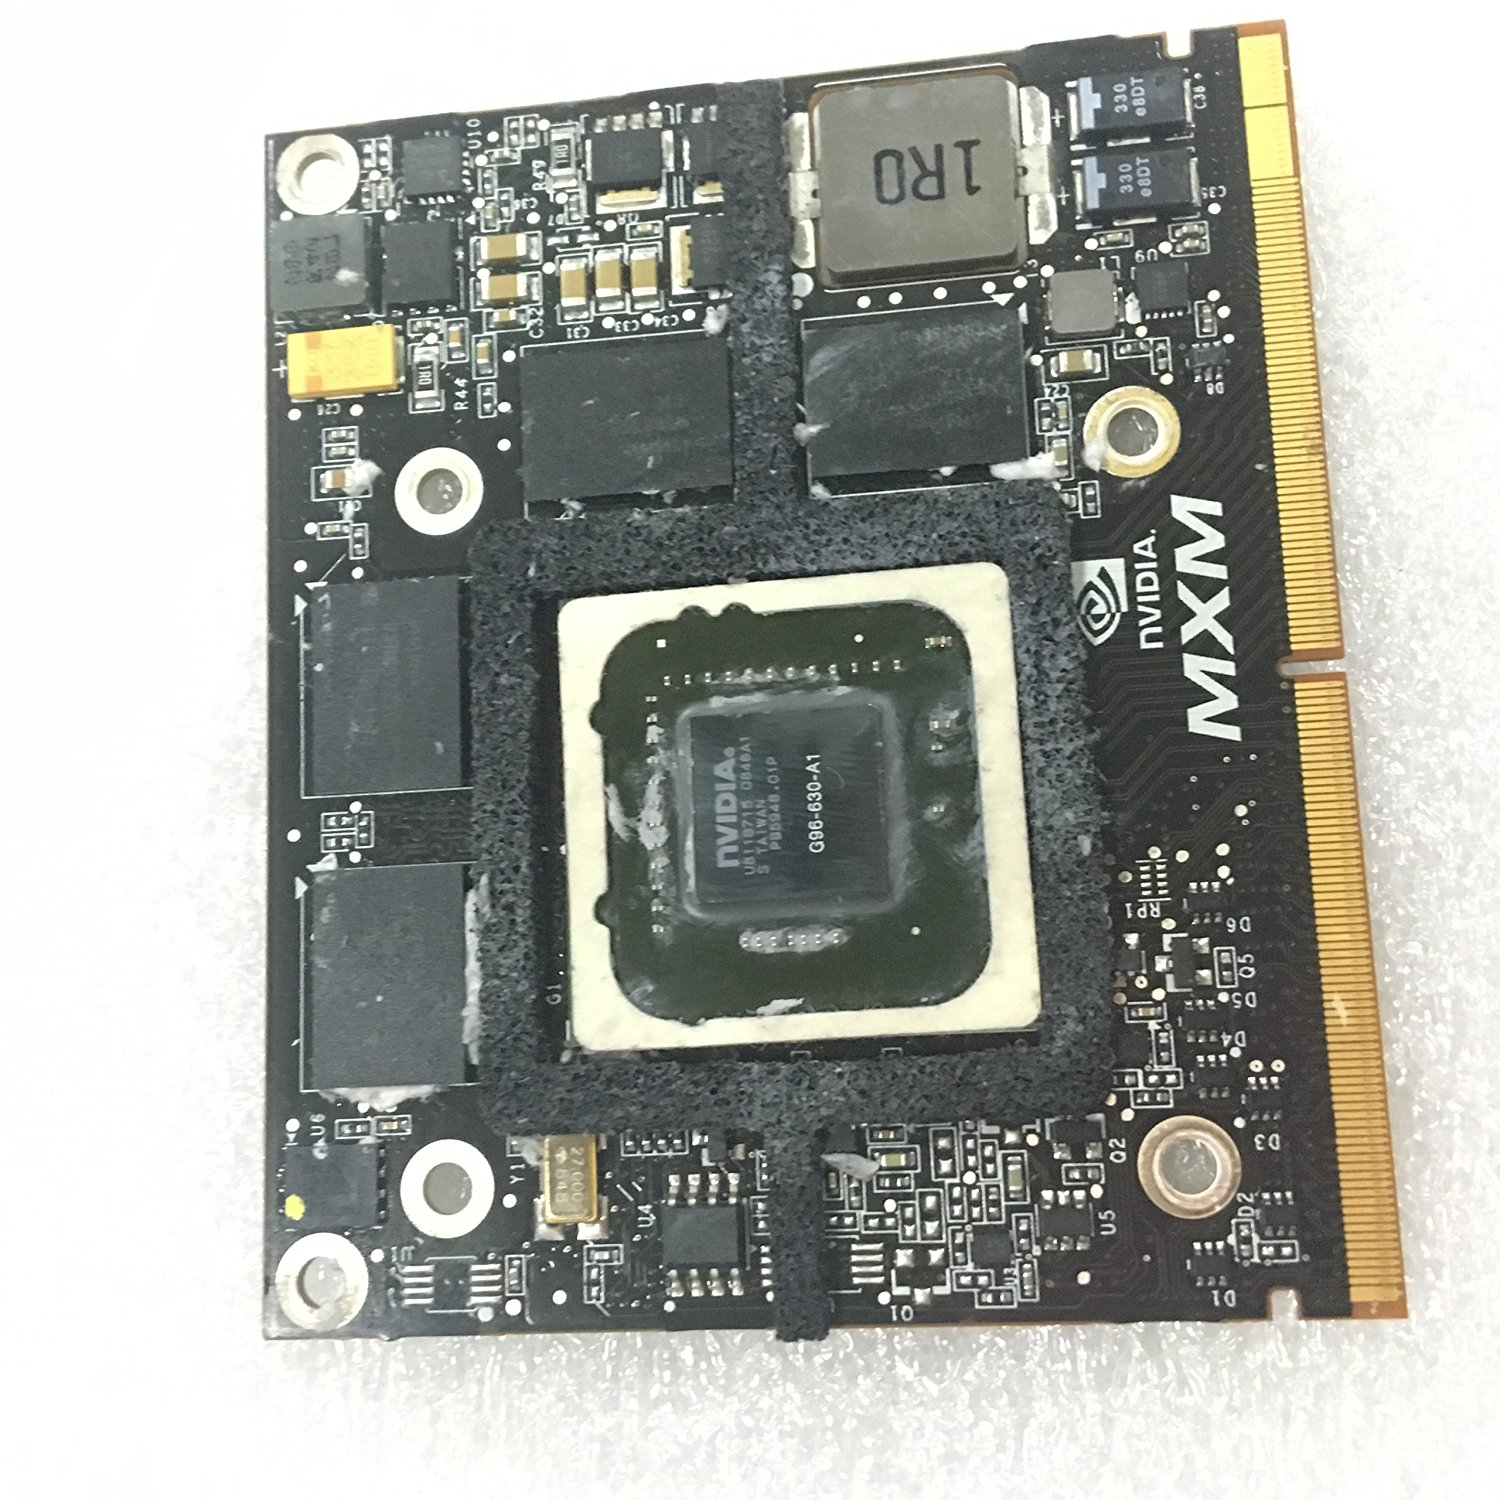 Cheap G96 630 A1 Vga Card Find Deals On Line At Msi Geforce Gt 1gb Ddr3 Get Quotations 661 4991 Video Nvidia Gt120 256mb Gddr3 For Imac 24 Early 2009